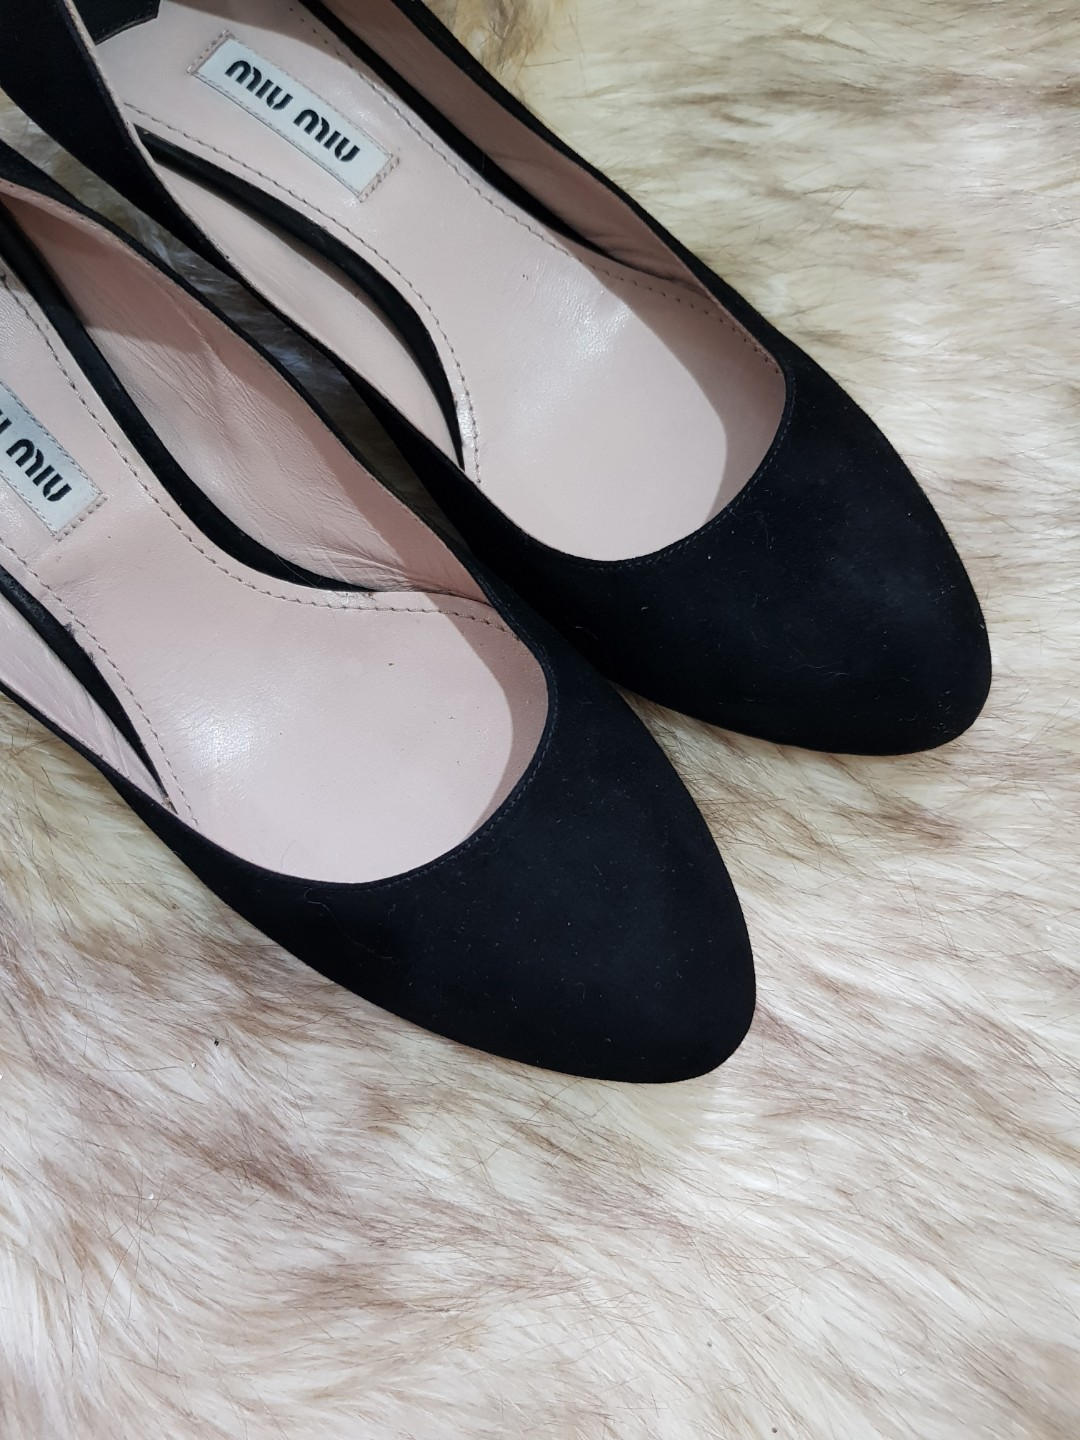 b87031cf0ce9 Authentic Miu Miu Black Suede Leather Kitten Heel Pumps Size 37.5, Women's  Fashion, Shoes on Carousell